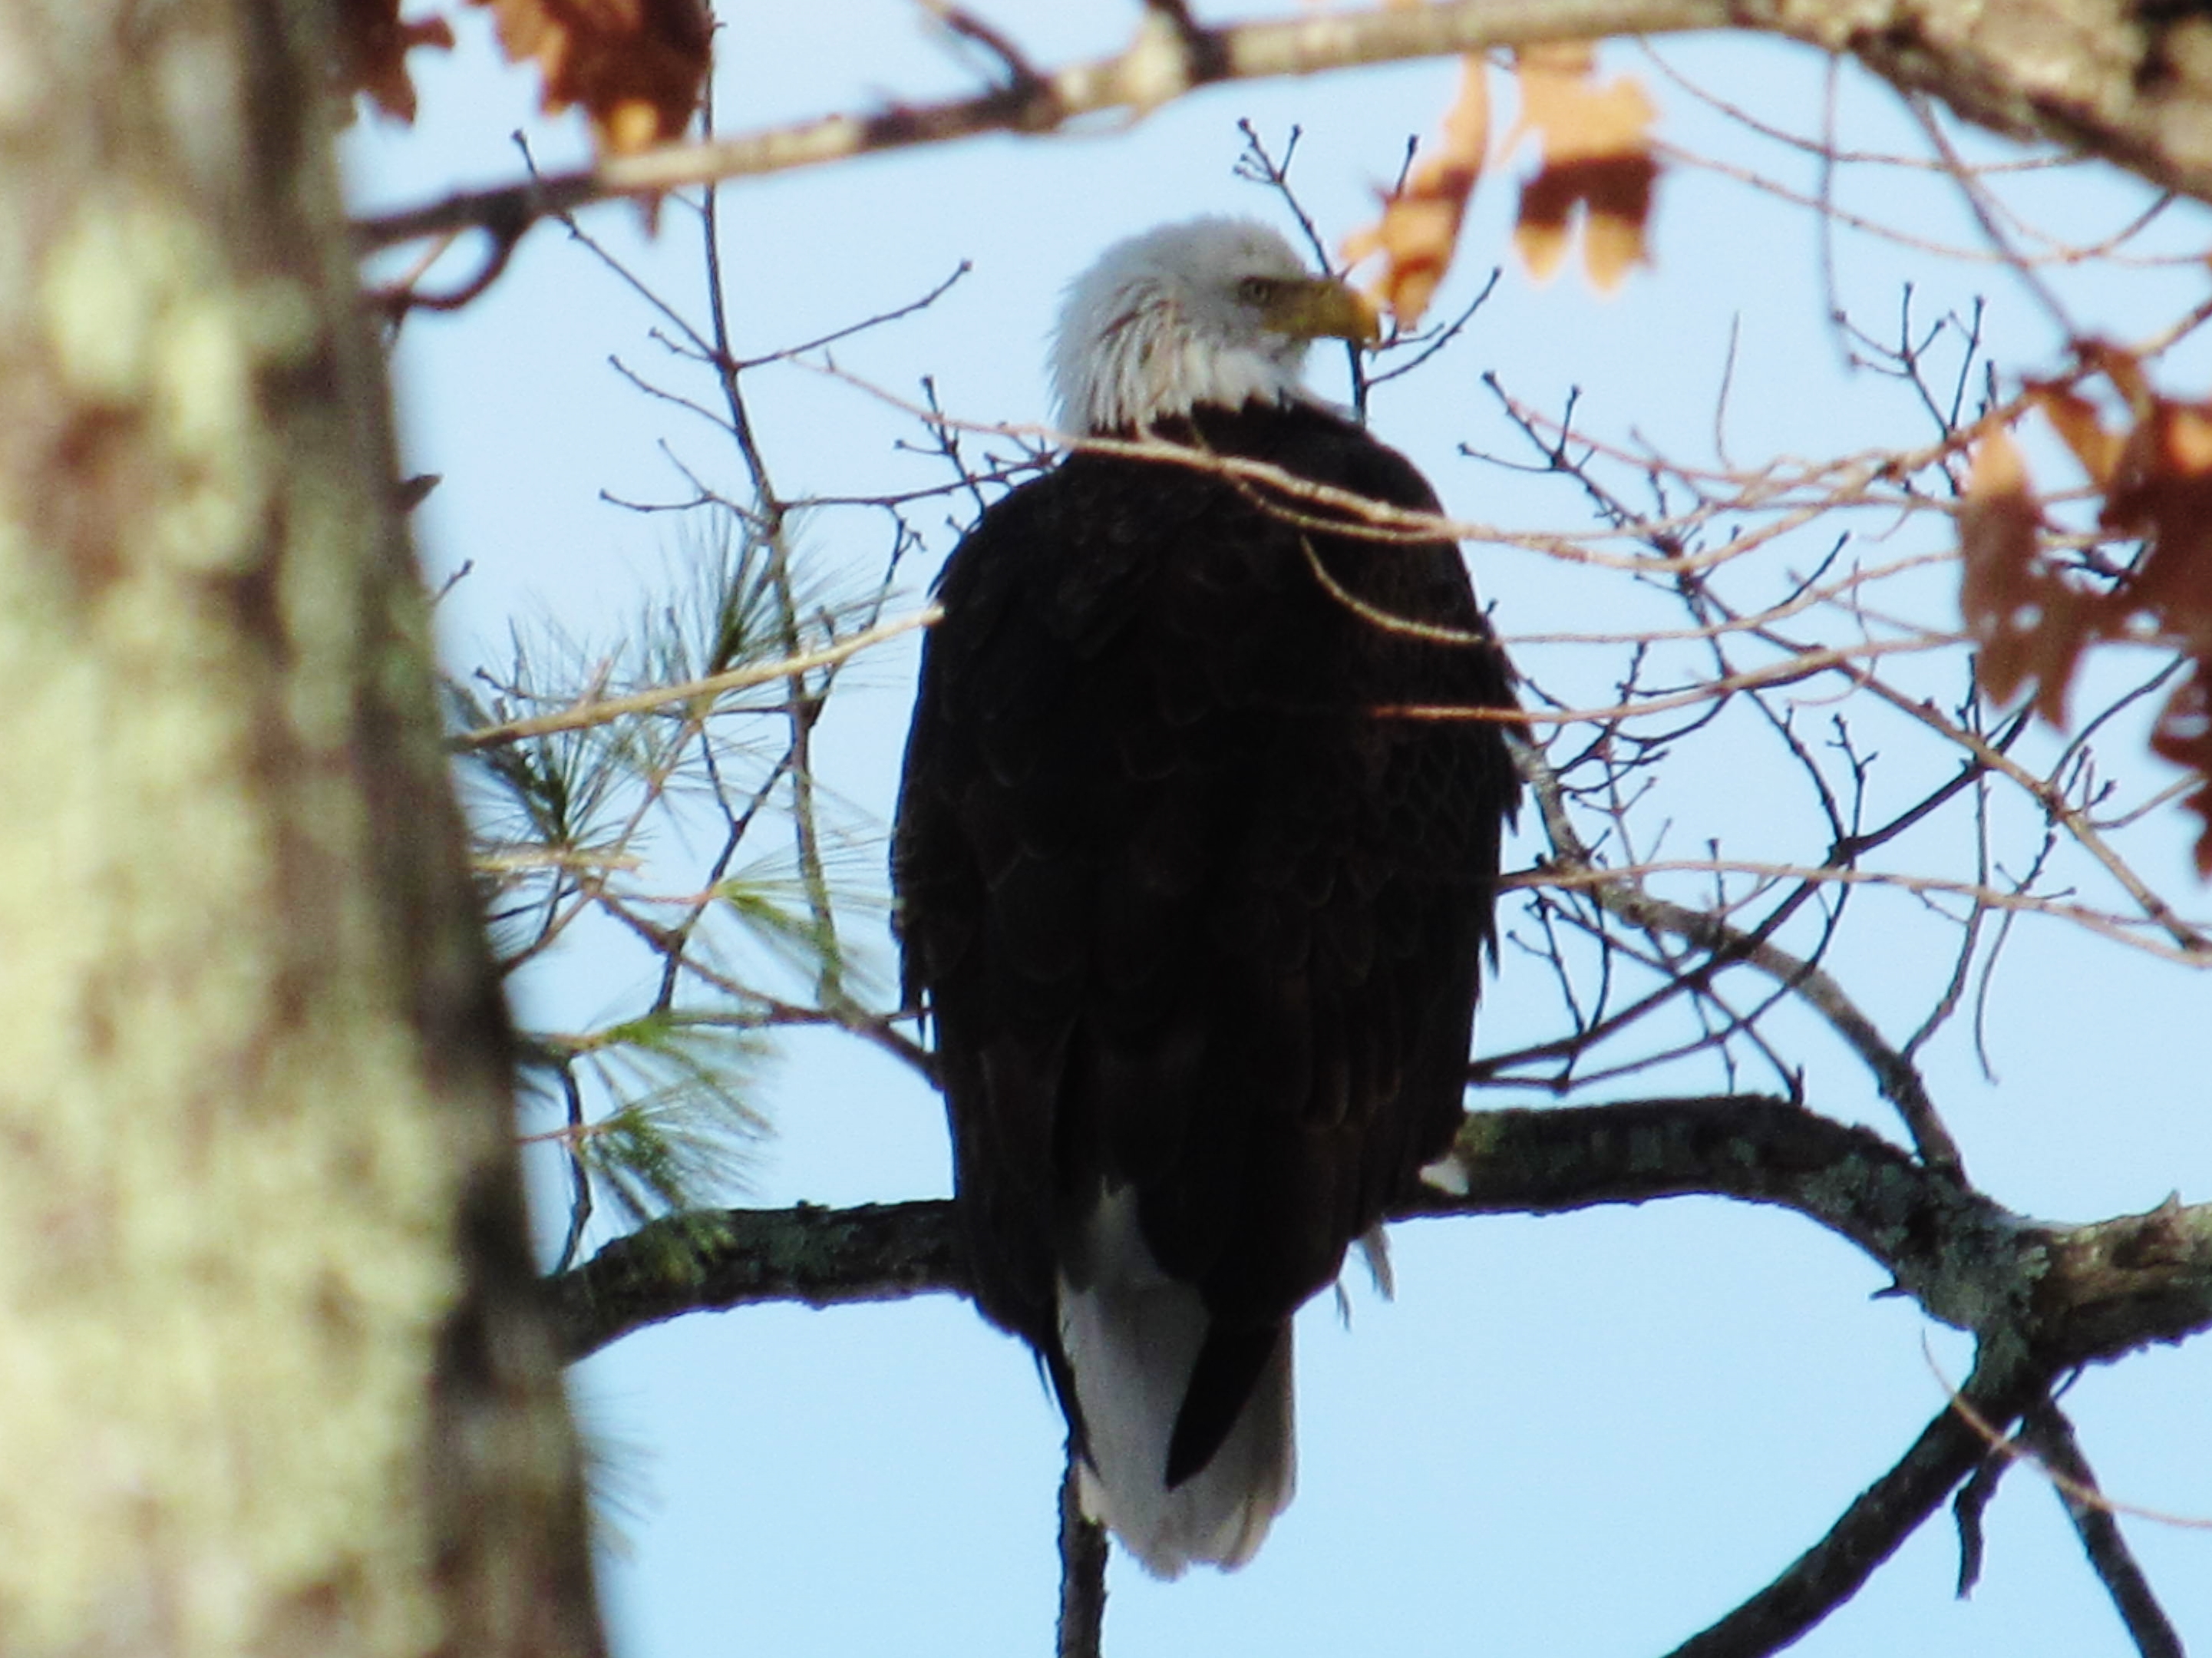 Bald Eagle at Wadleigh Pond in Lyman, ME (USA)